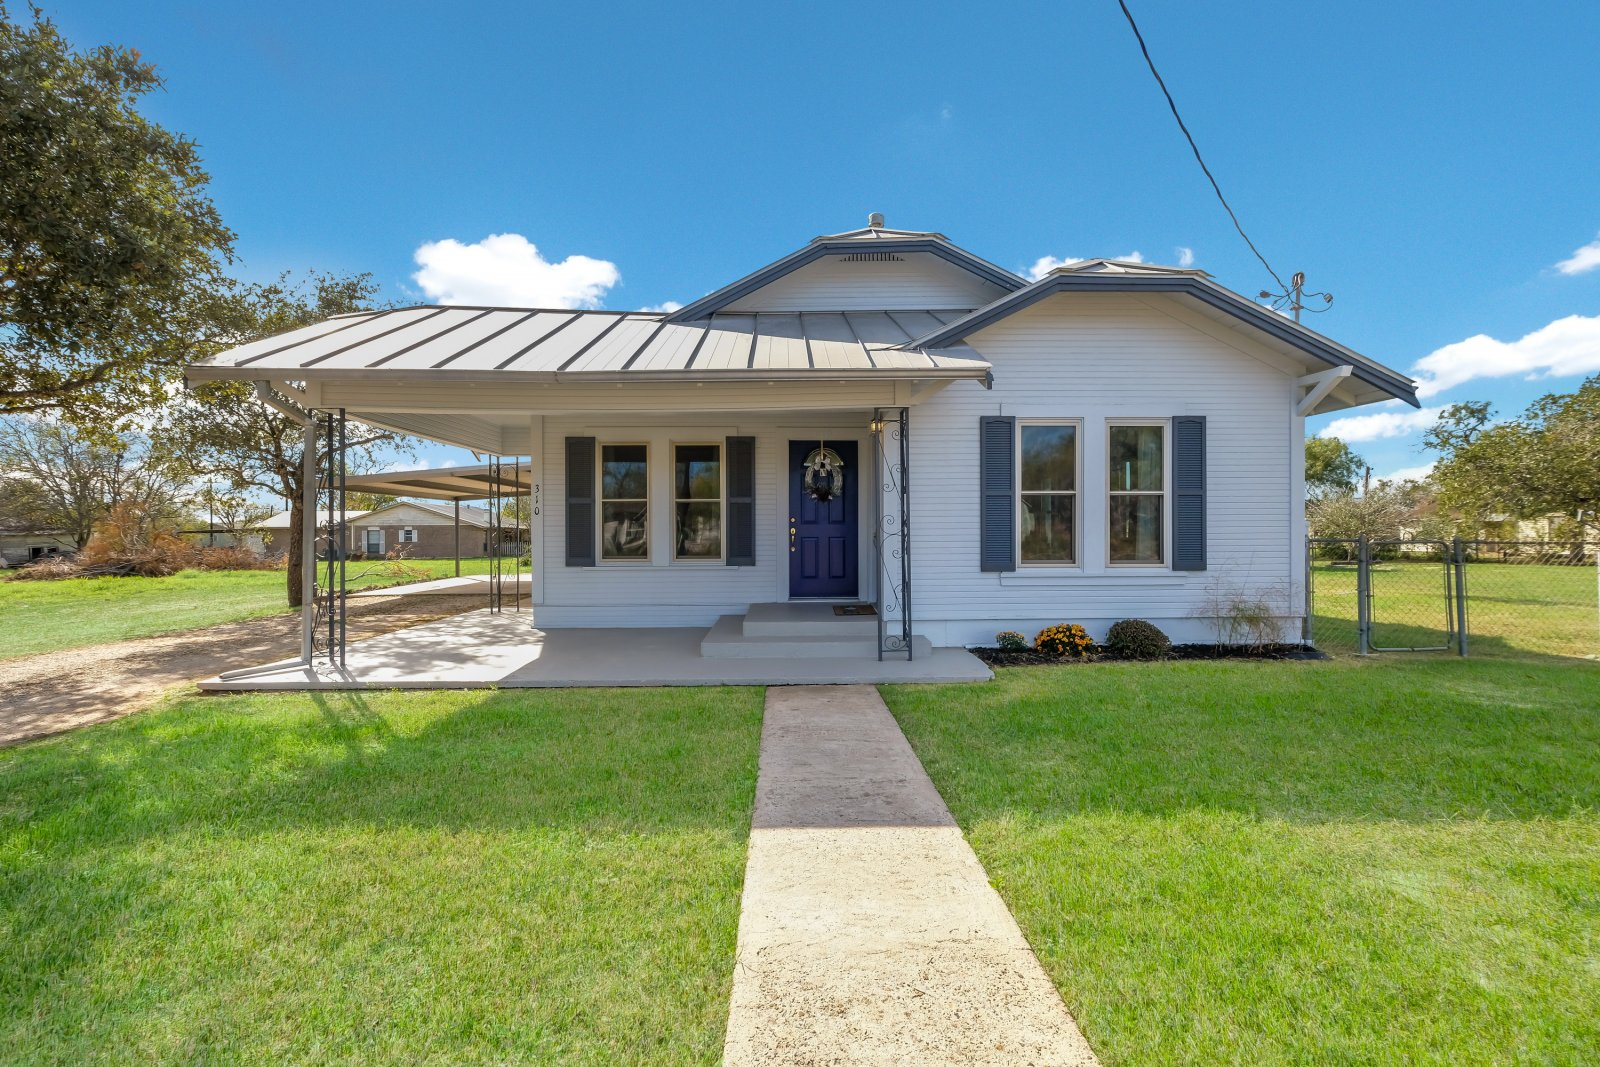 Home for sale Poth Tx